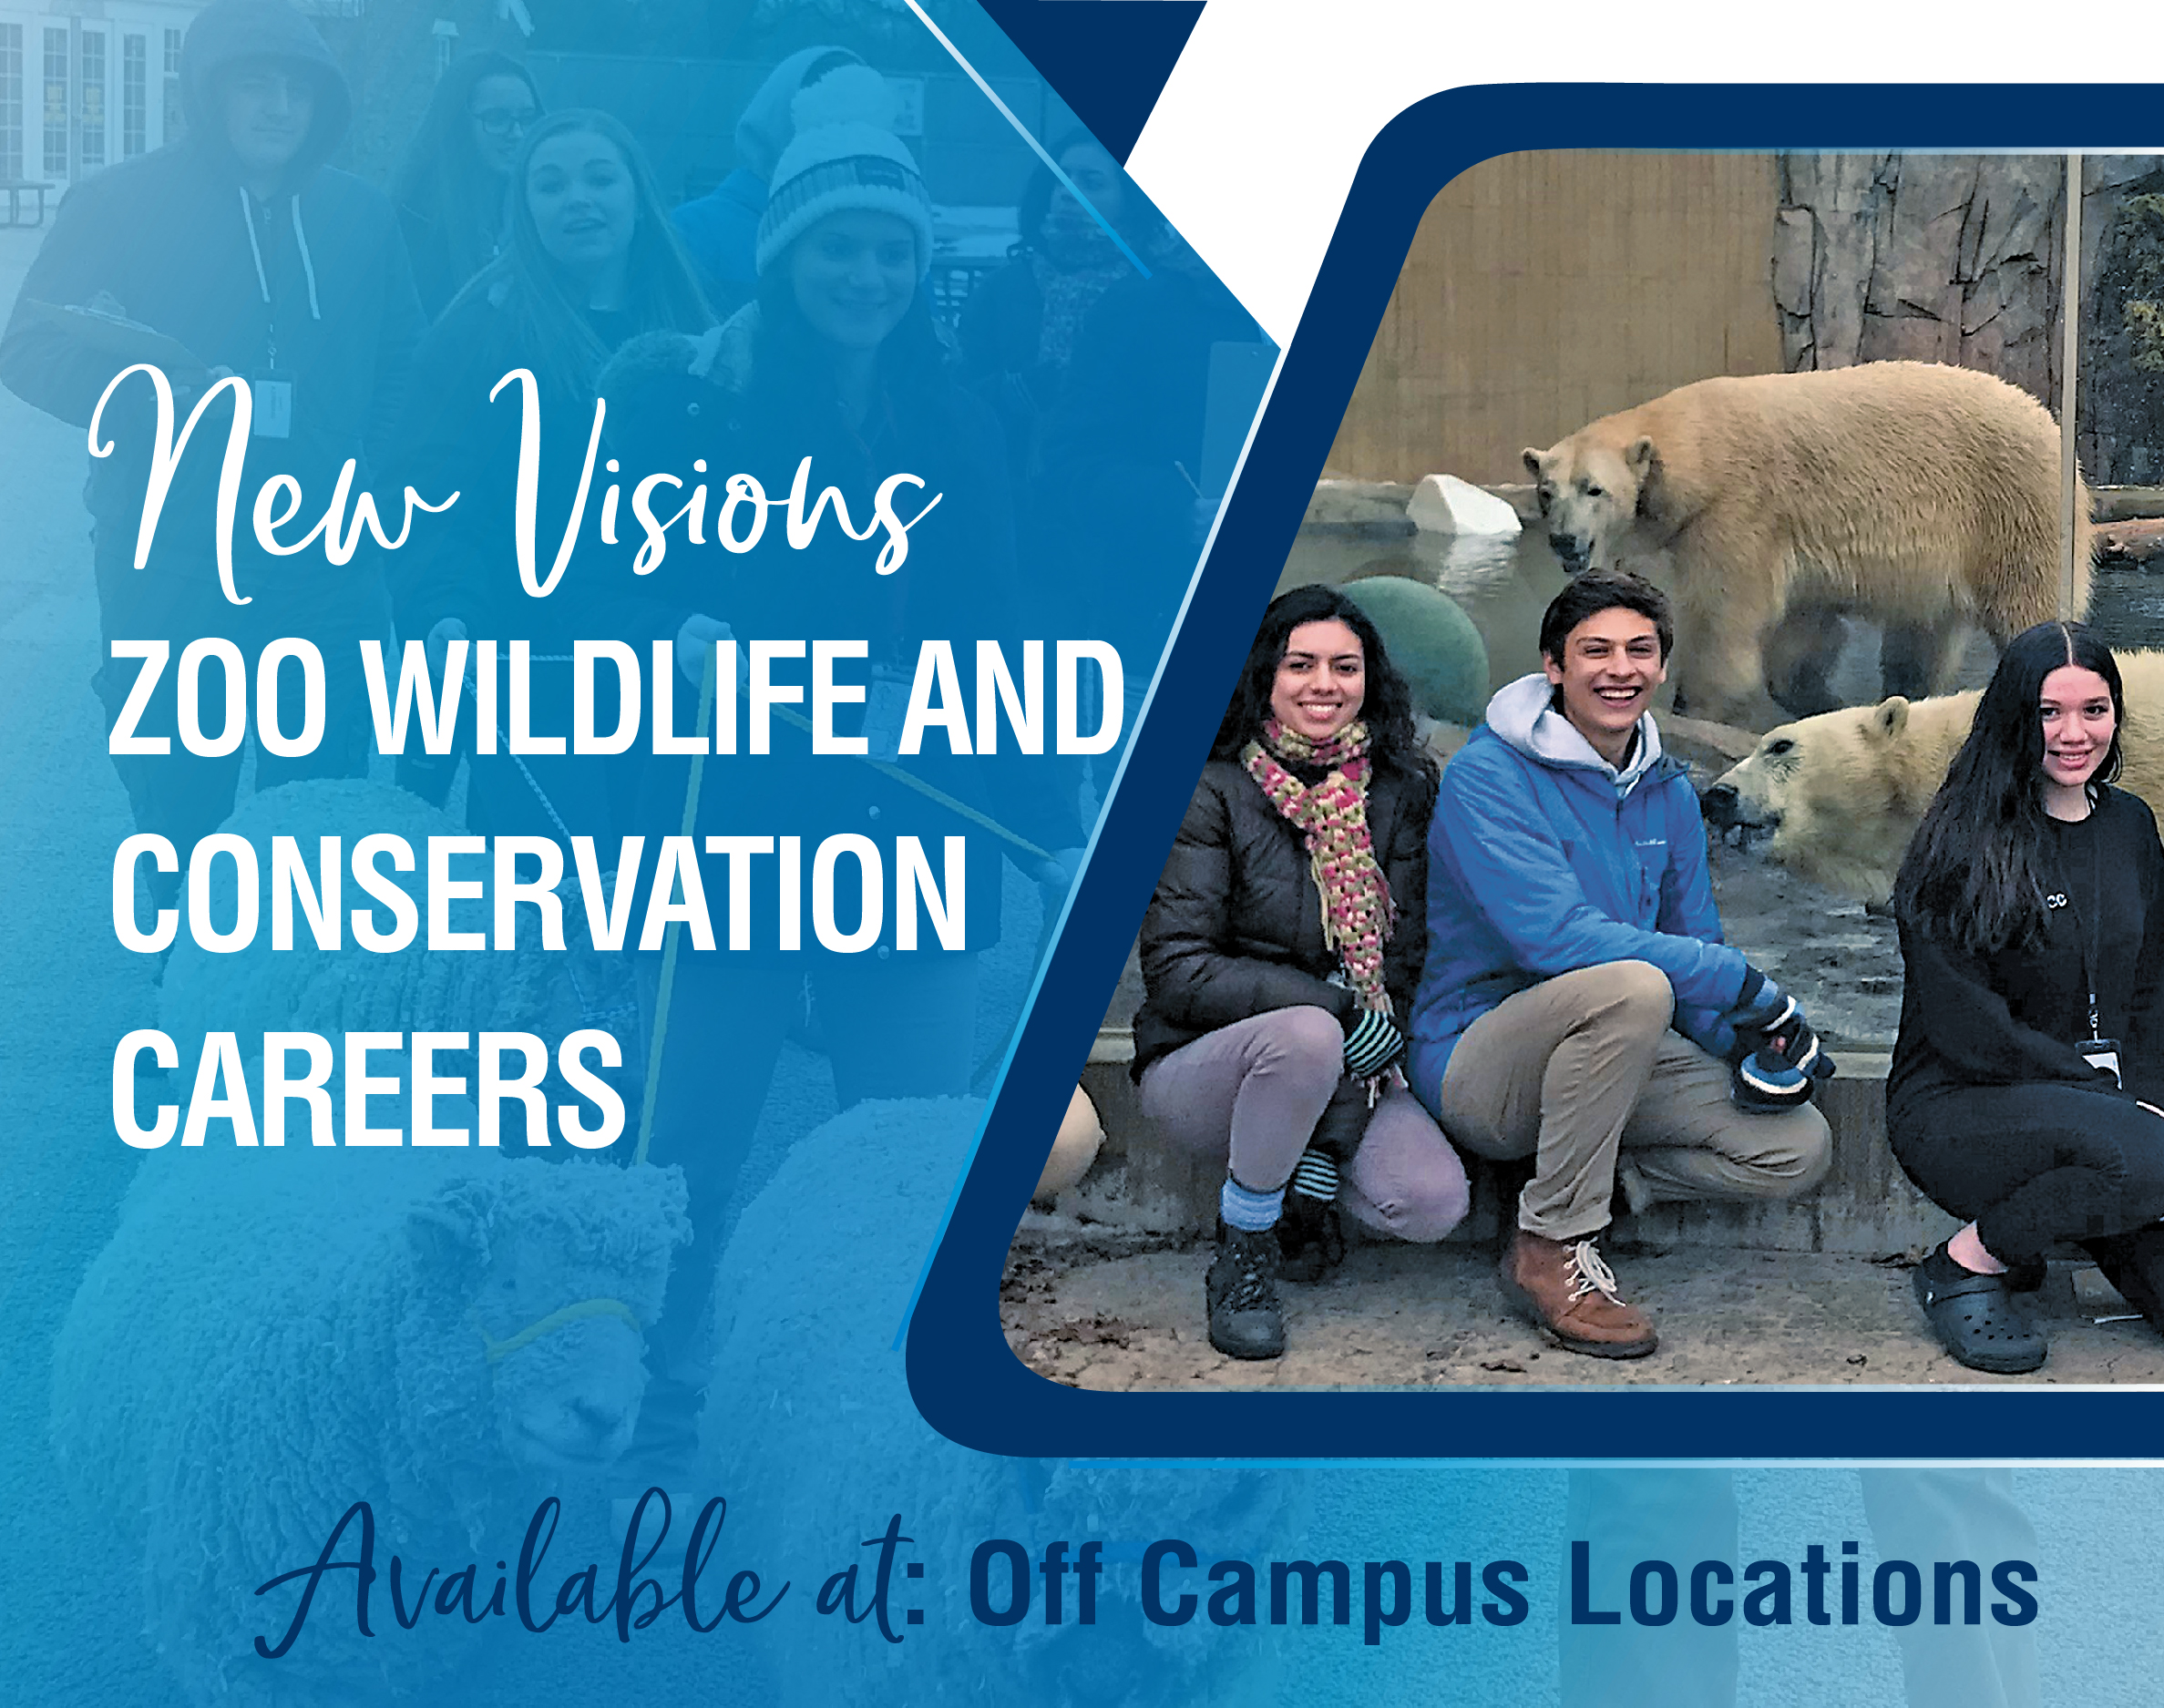 New Visions Zoo Wildlife and Conservation Careers